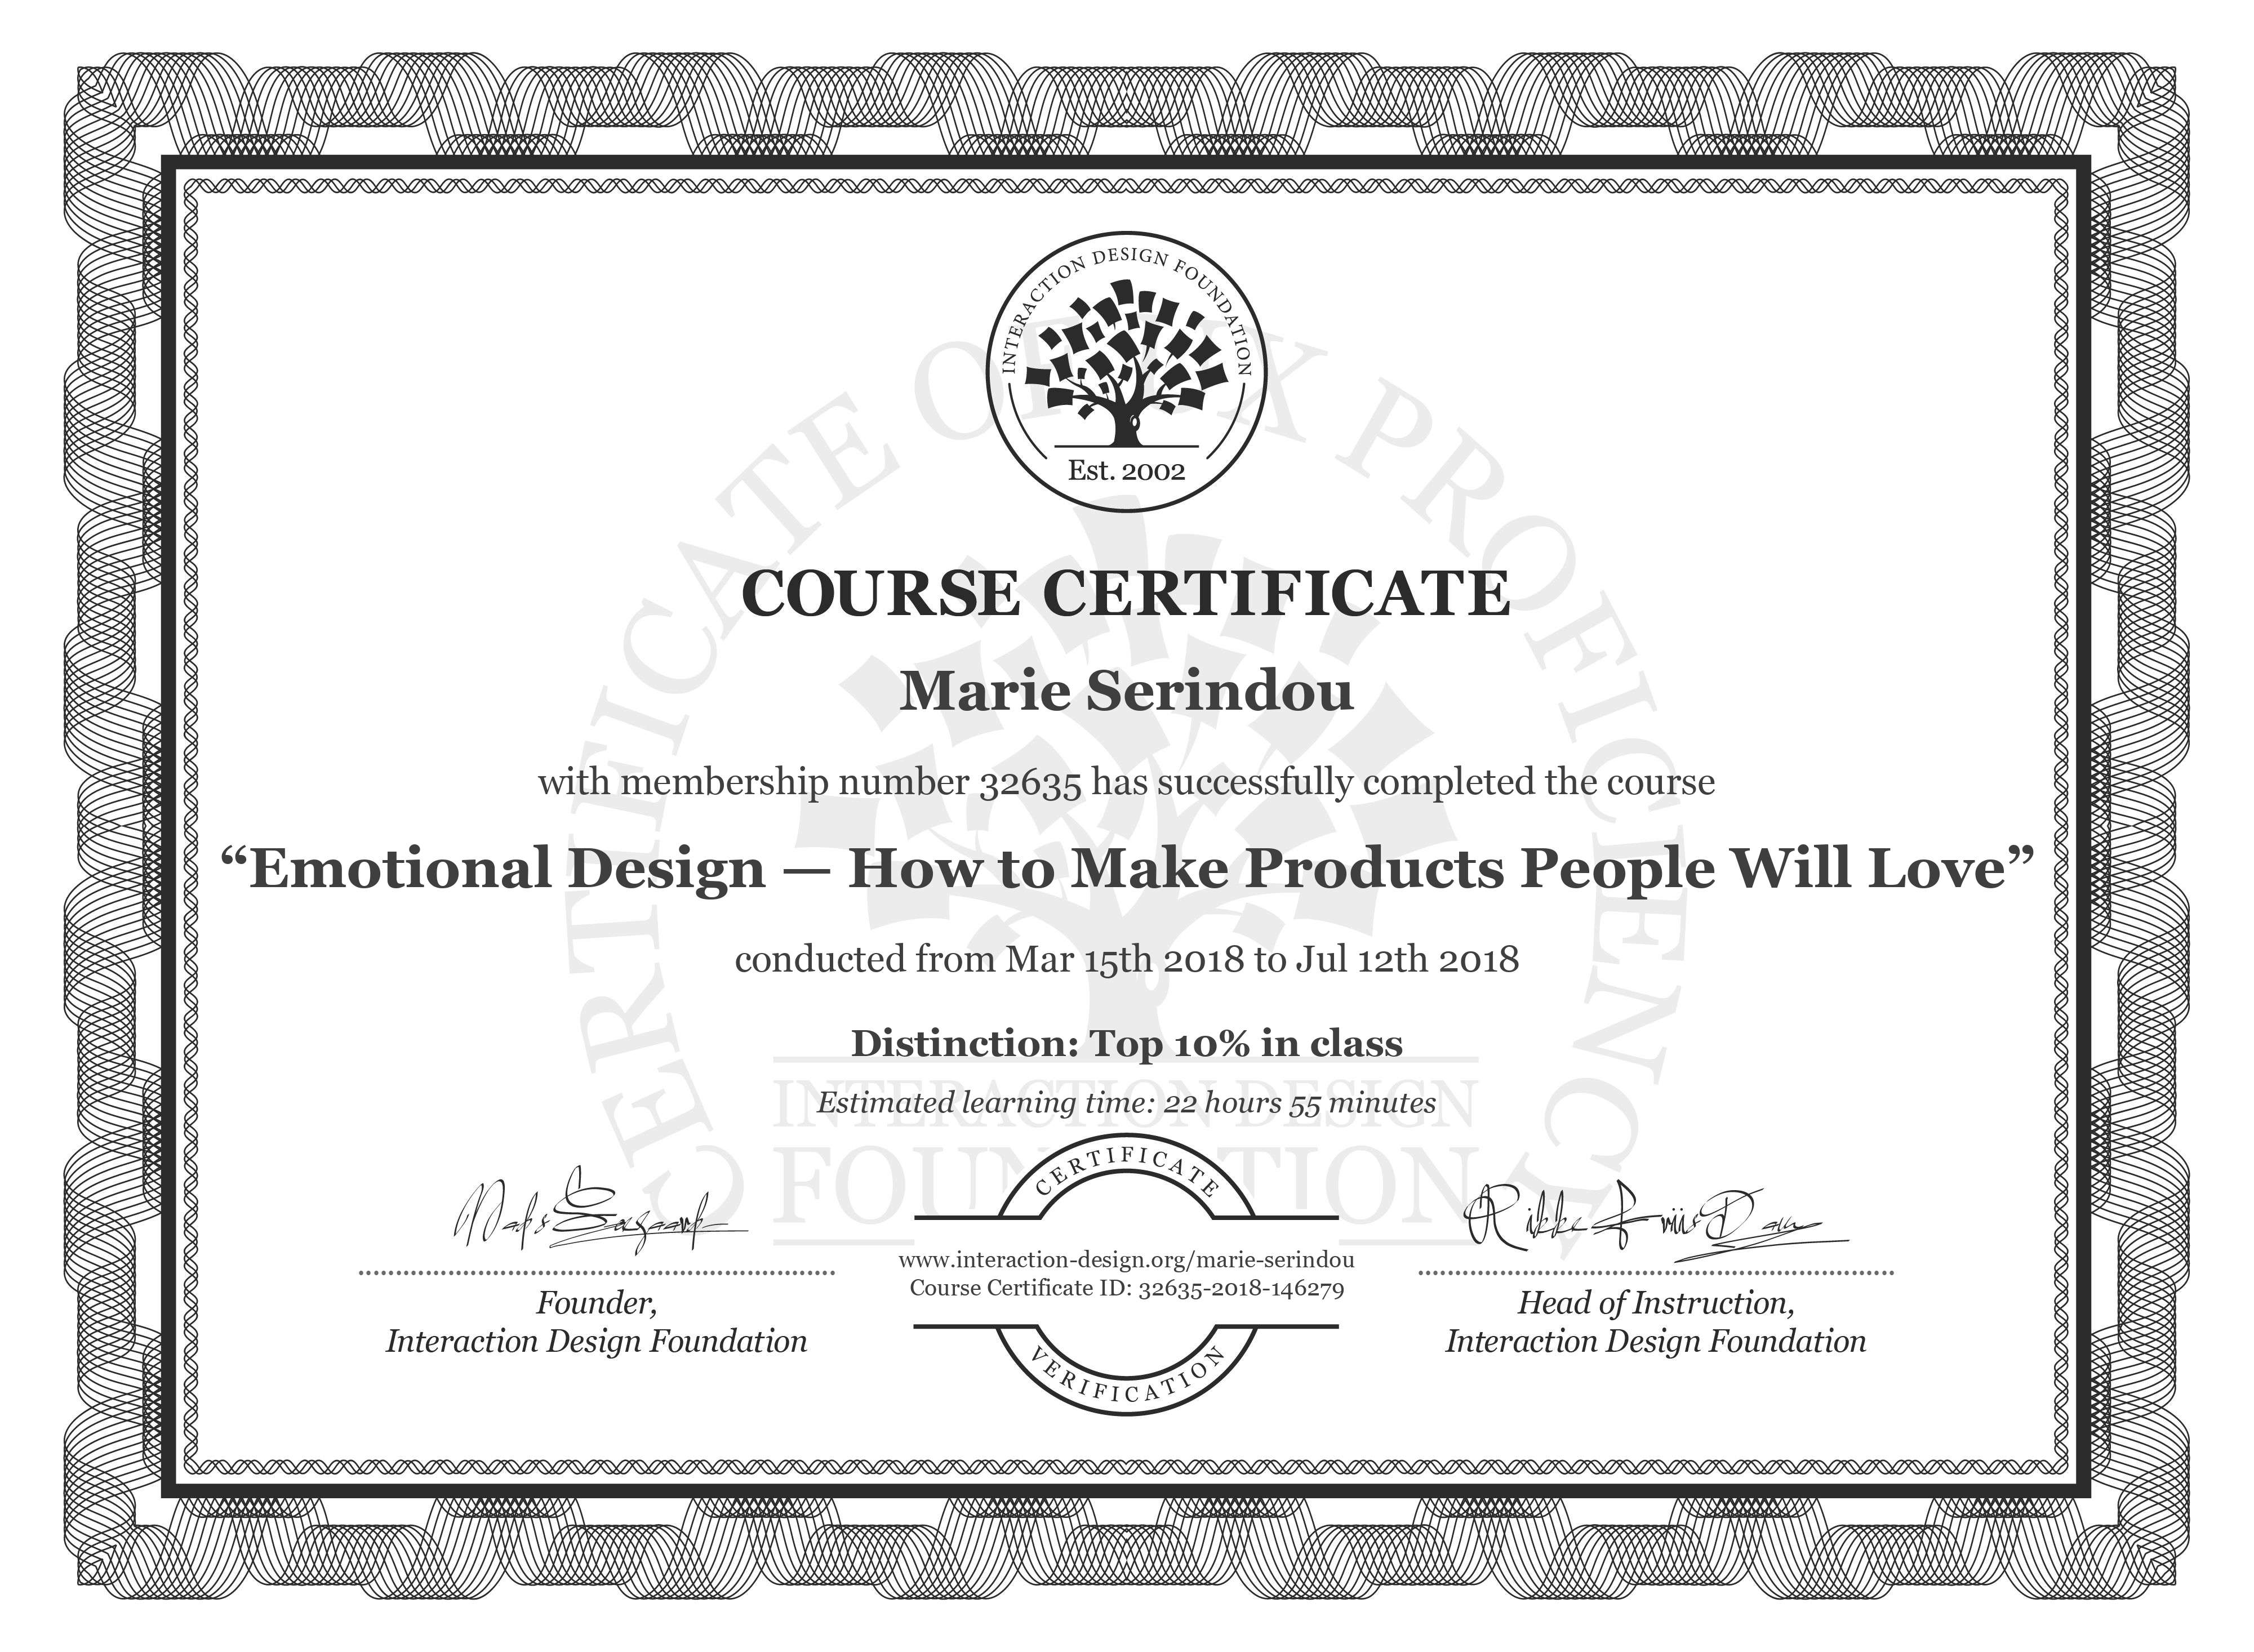 Marie Serindou: Course Certificate - Emotional Design — How to Make Products People Will Love